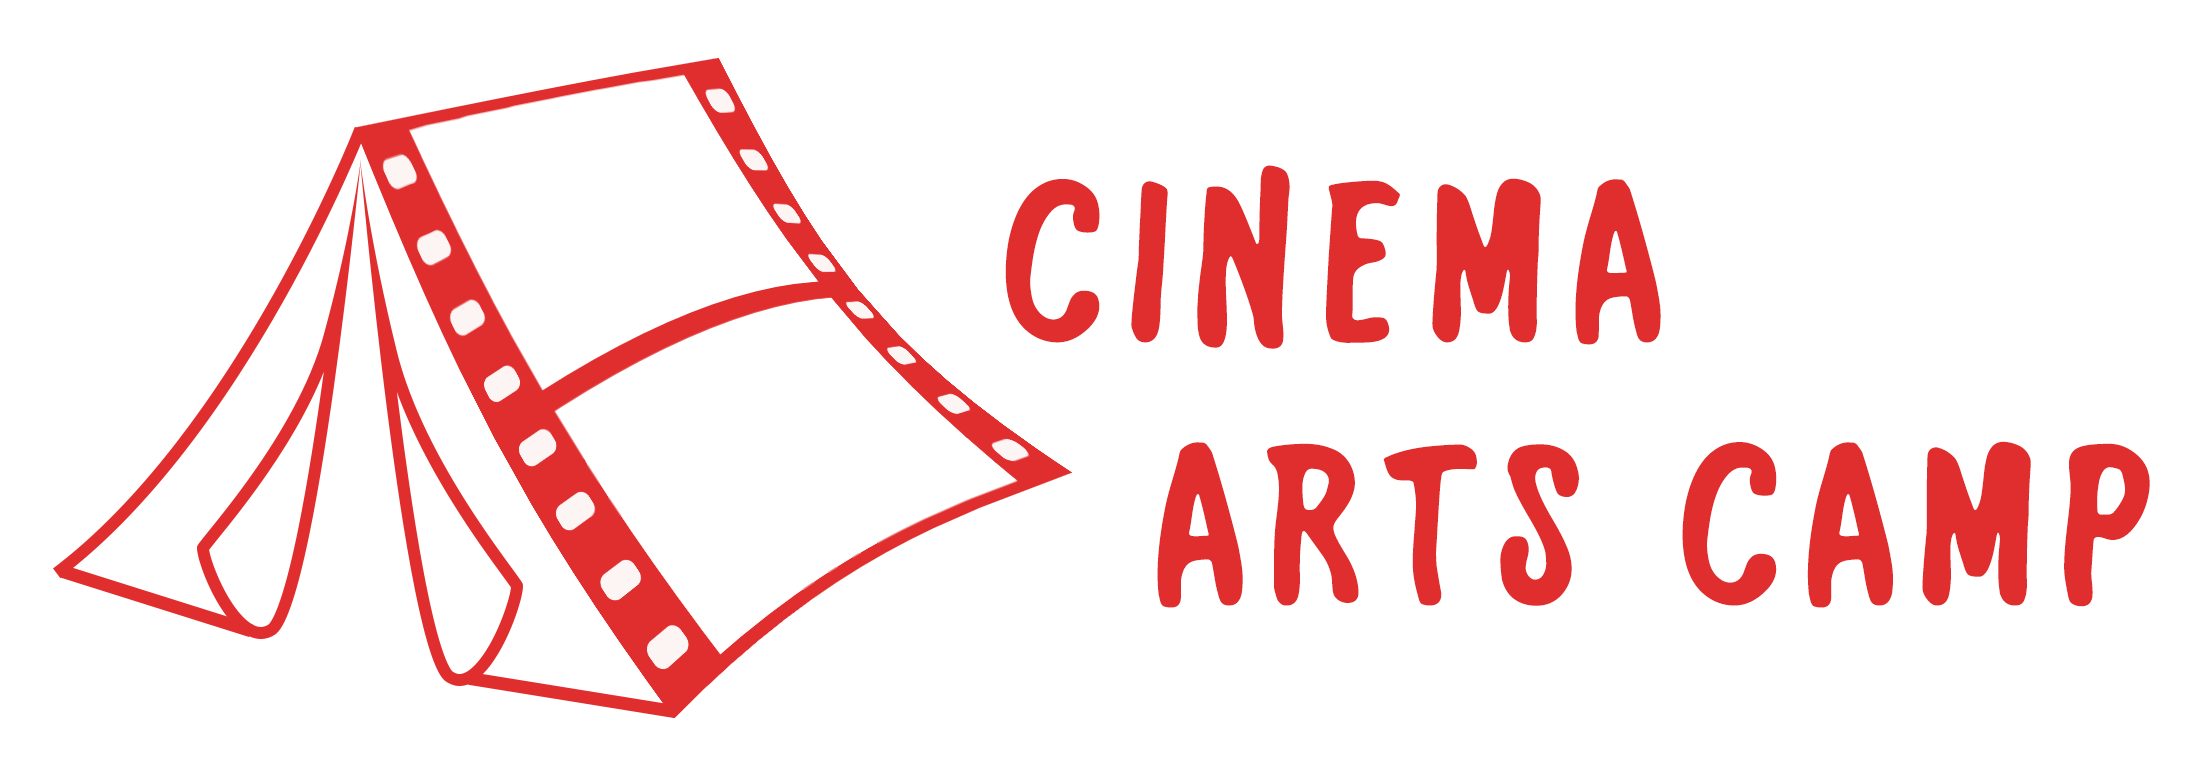 cinema arts camp